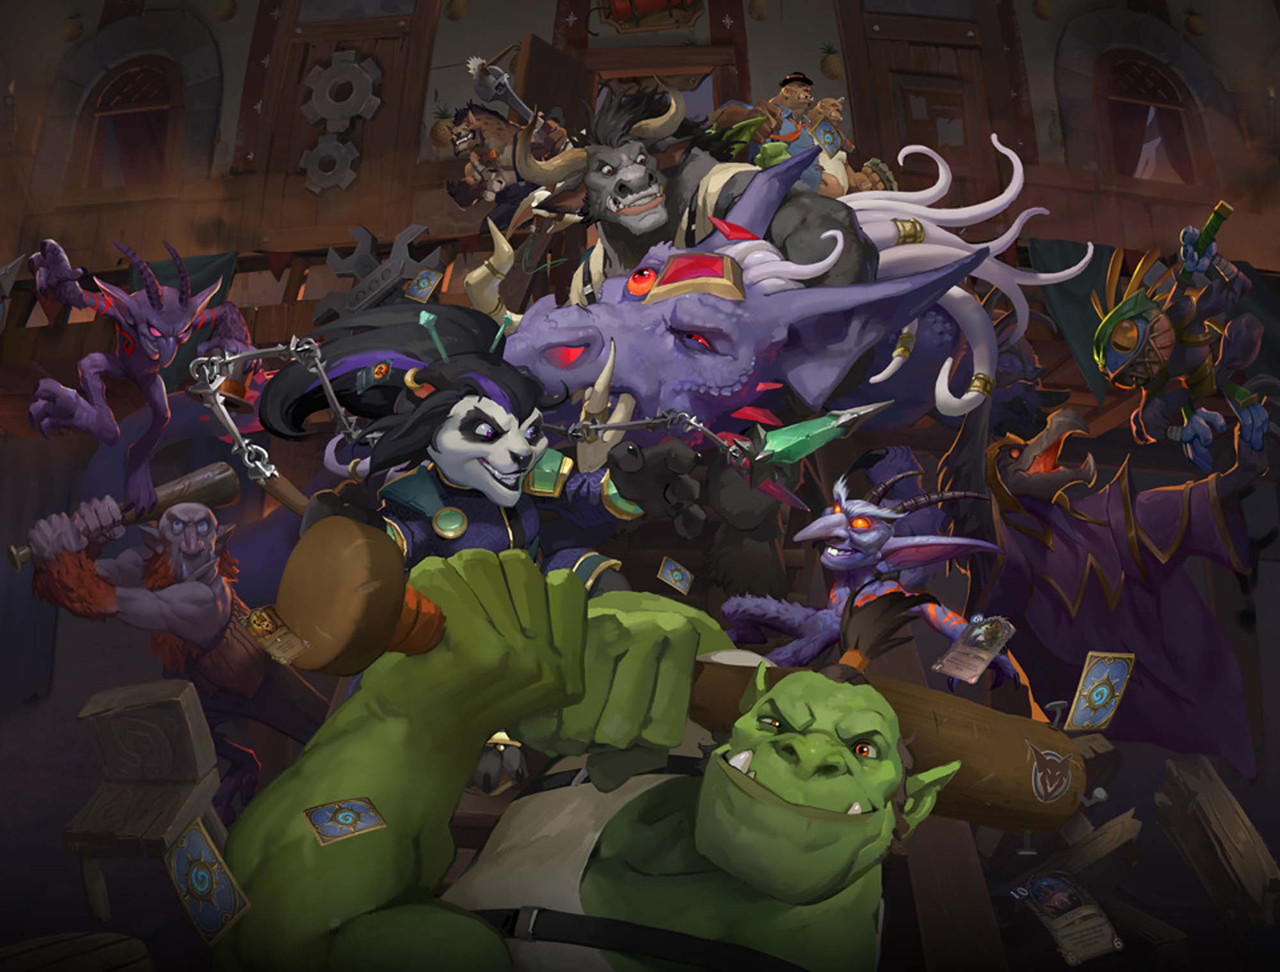 A stroll down Hearthstone's Mean Streets